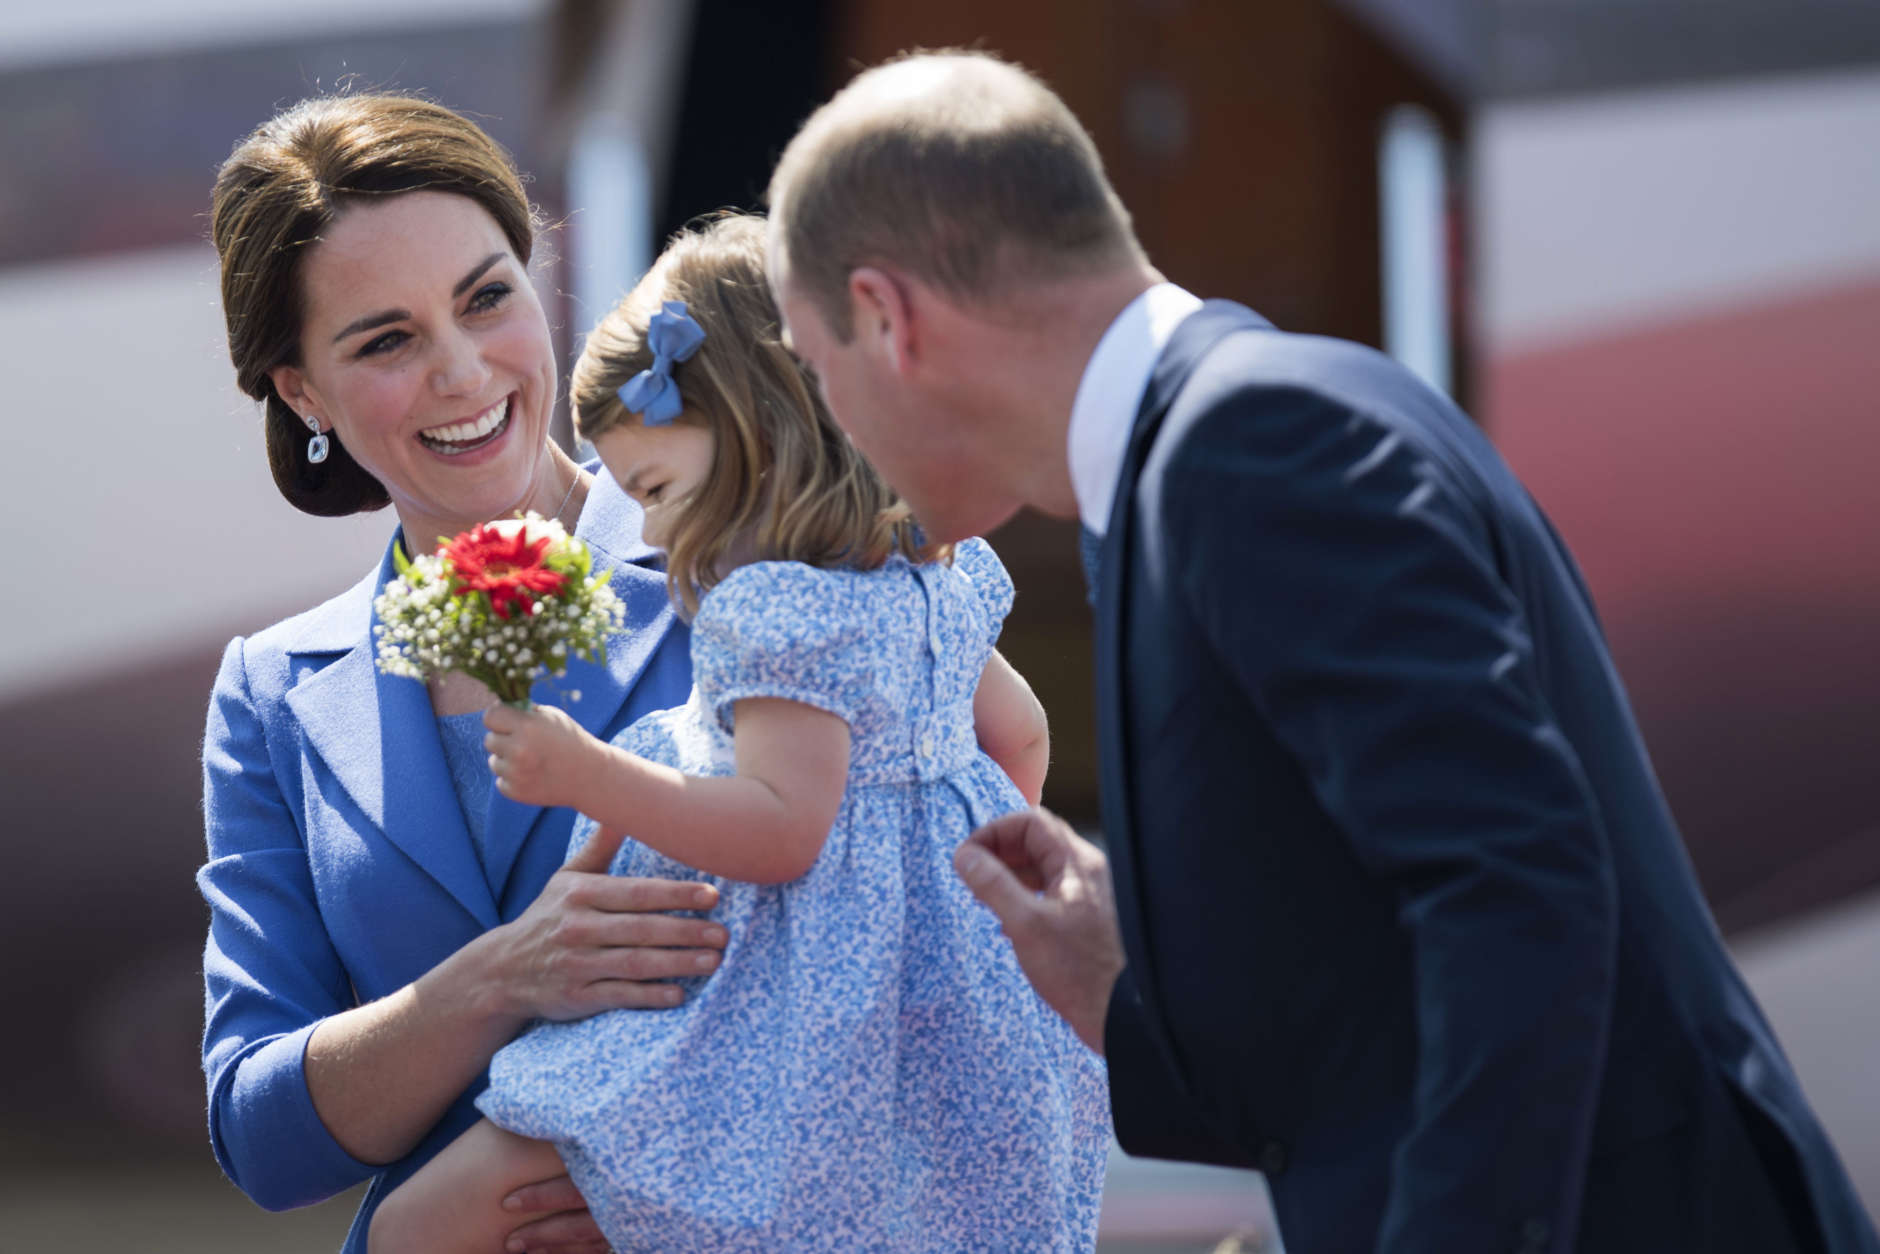 Britain's Prince William, his wife Kate, the Duchess of Cambridge and their daughter Princess Charlotte arrive at the airport in Berlin, Wednesday, July 19, 2017. The British royal couple is on a three-day-visit in Germany. (Steffi Loos/Pool Photo via AP)